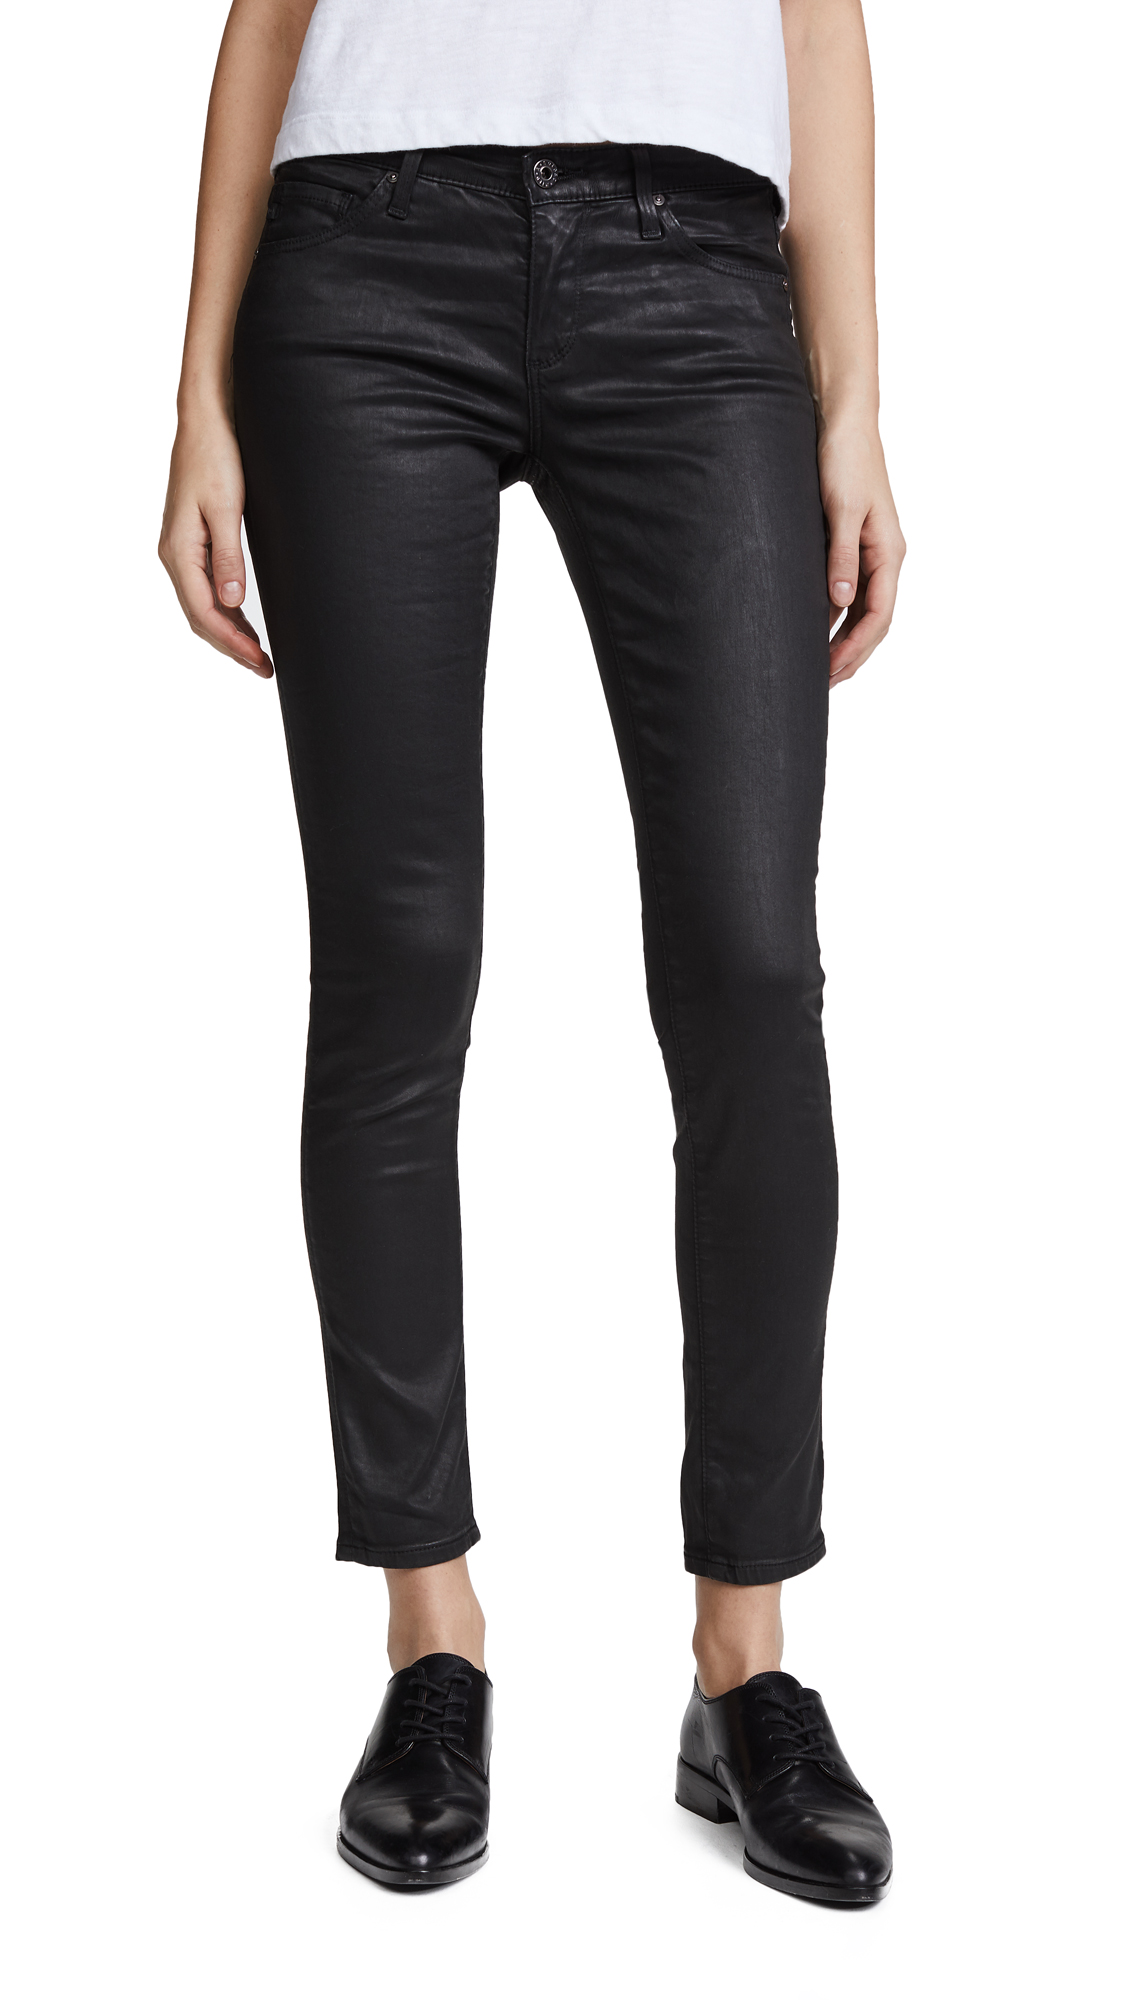 The Super Skinny Legging Ankle Jeans